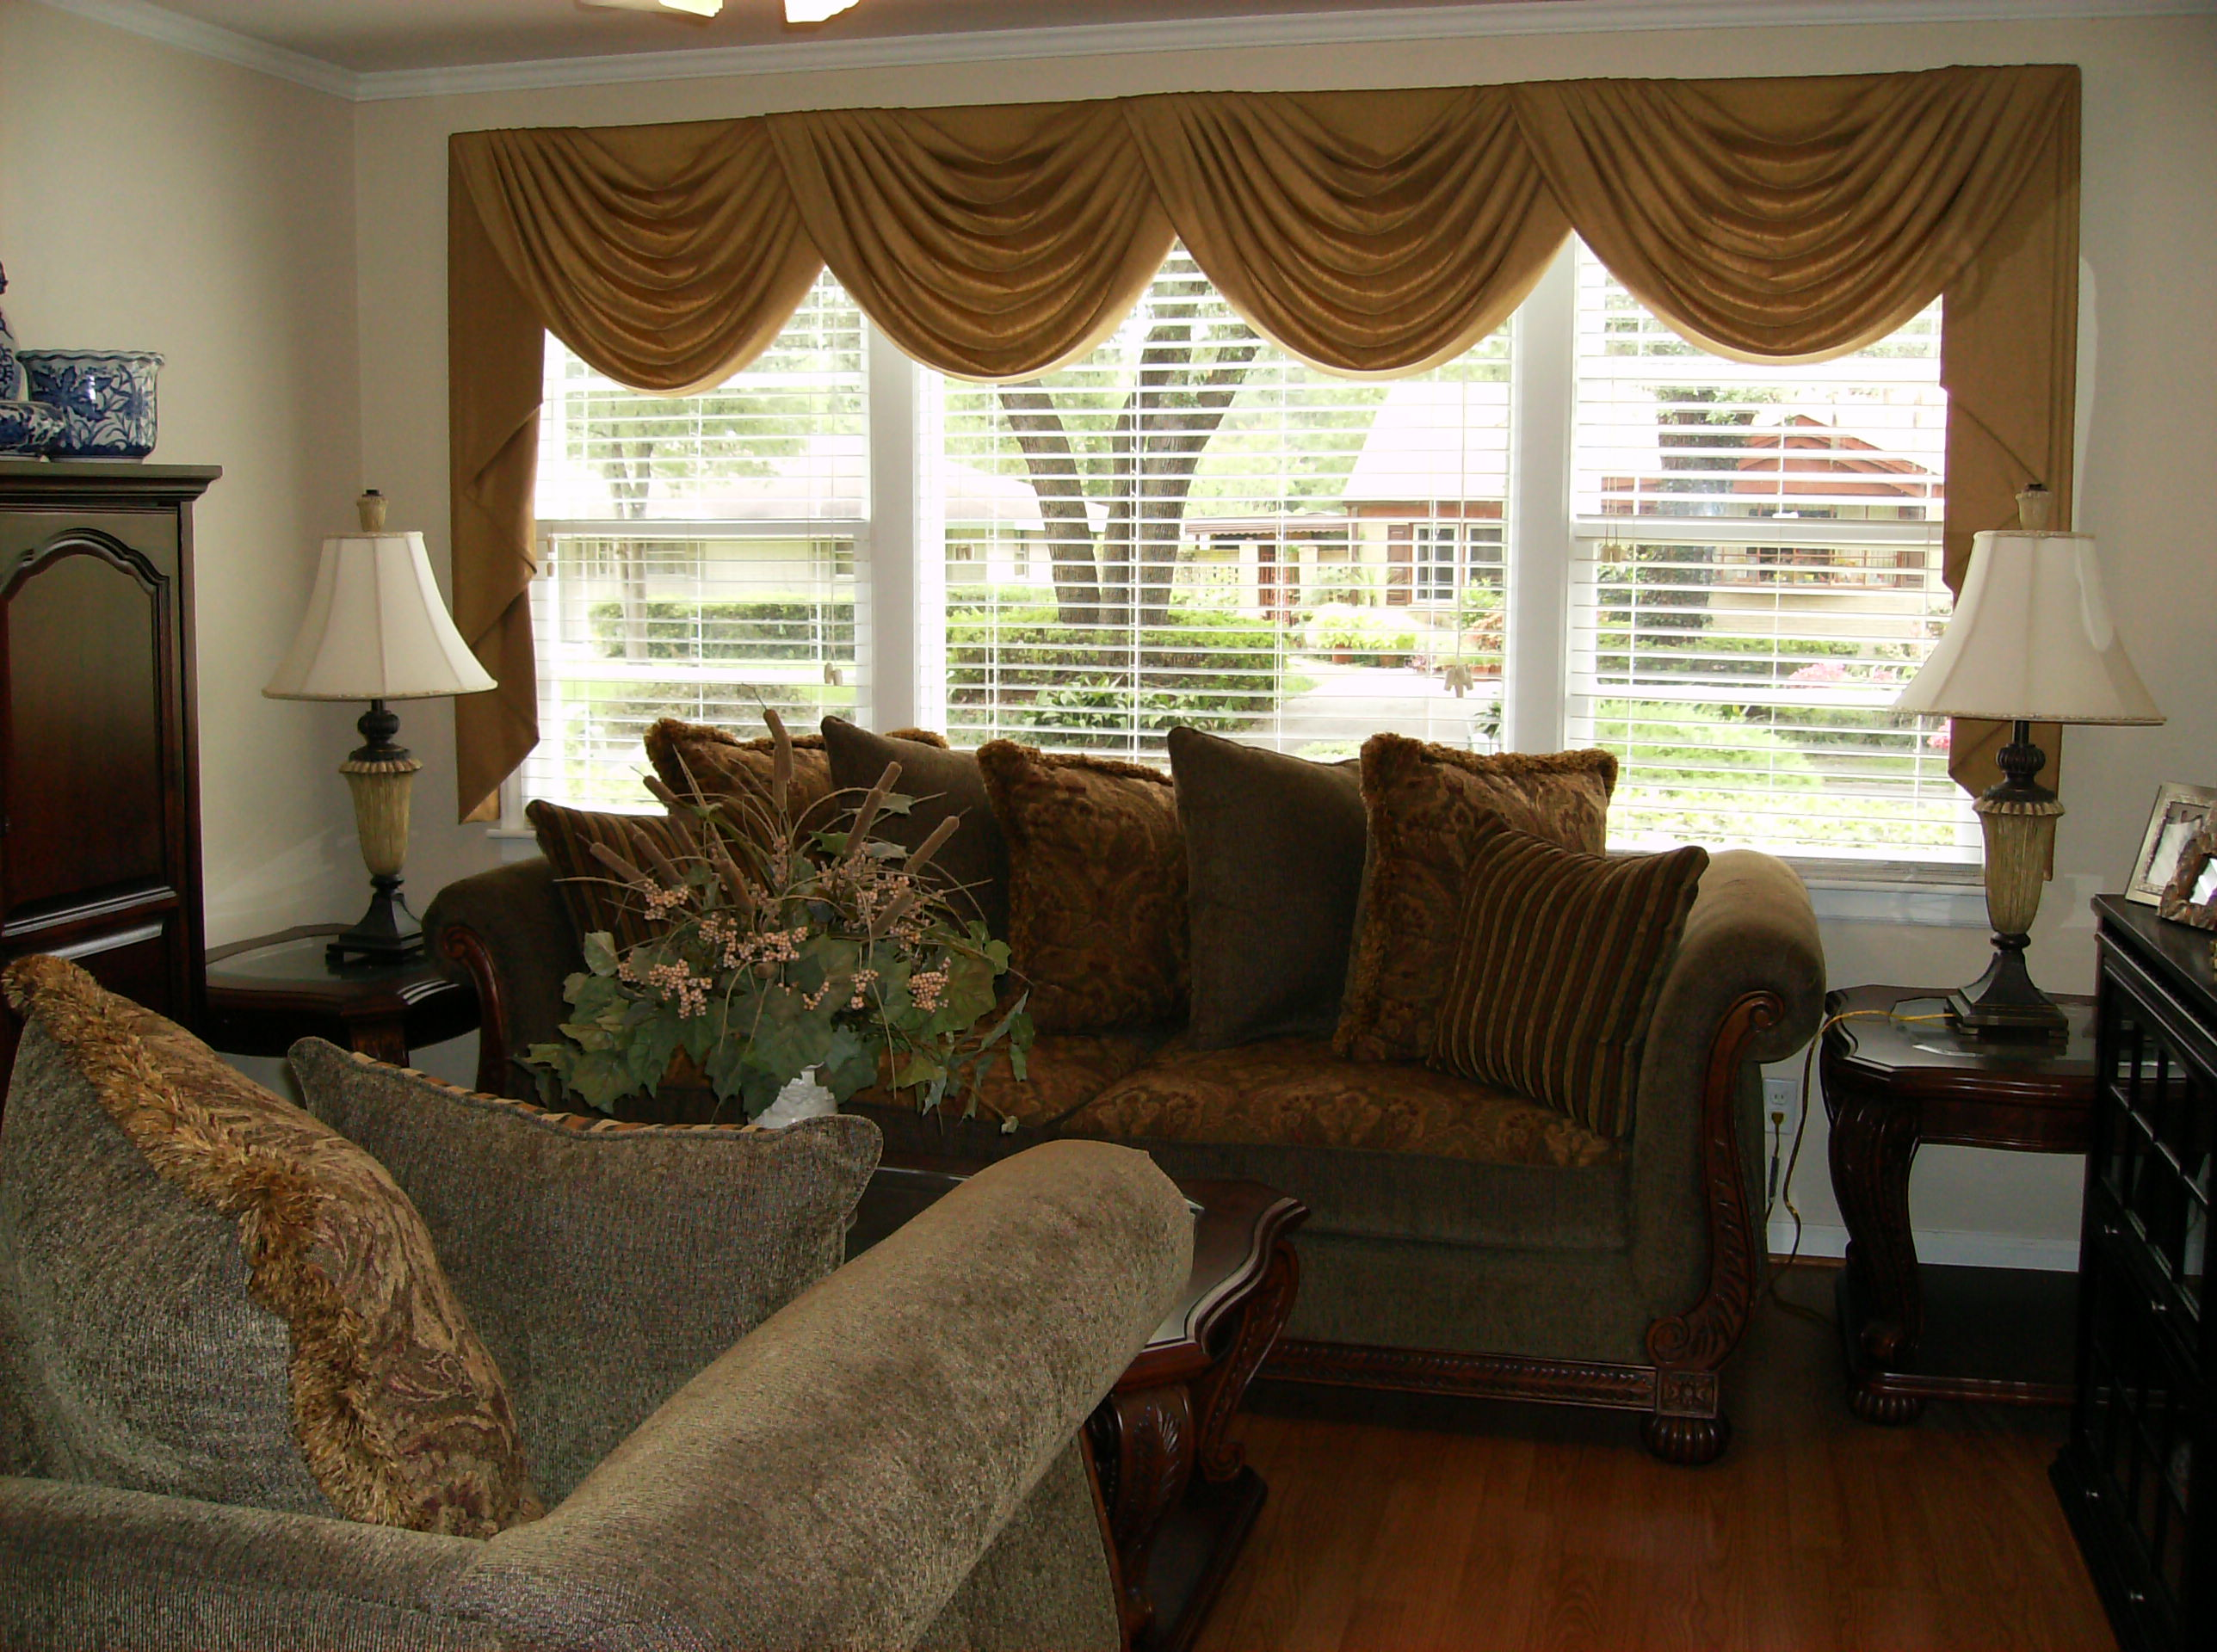 Unique Find custom window treatments custom window treatments